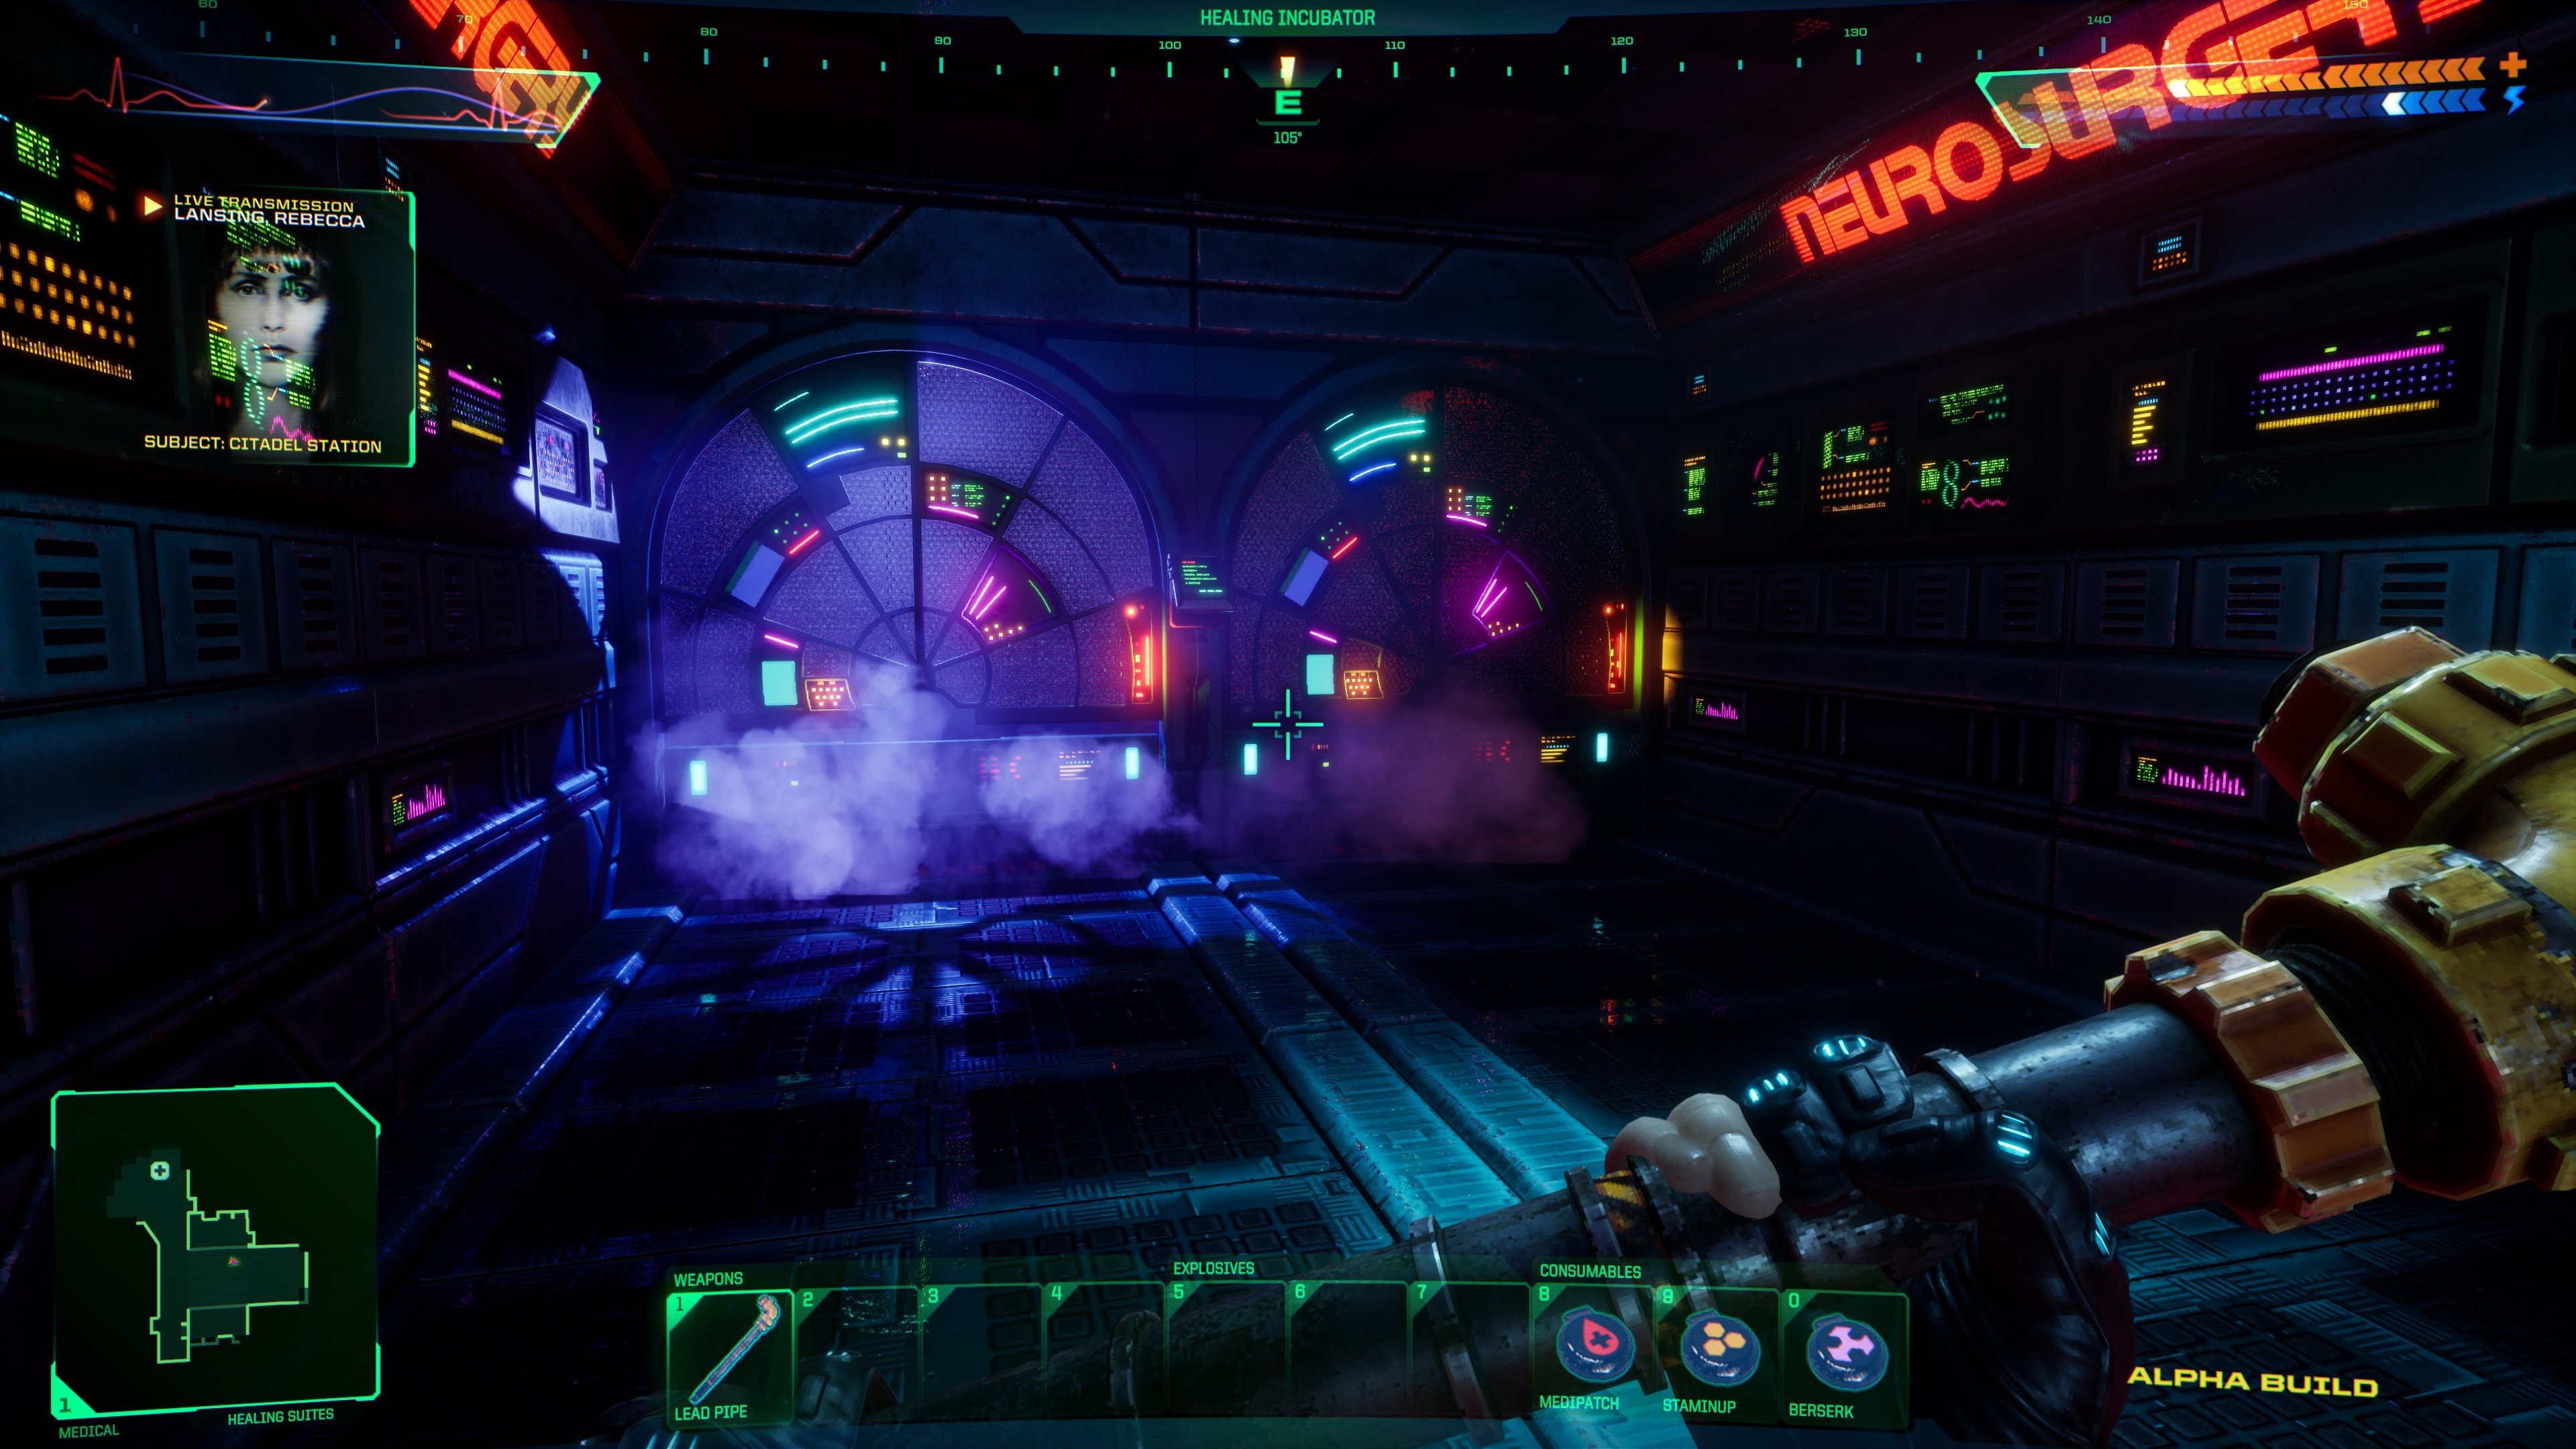 Media asset in full size related to 3dfxzone.it news item entitled as follows: Teaser trailer, demo per PC e screenshots del remake di System Shock | Image Name: news31742_System-Shock-Screenshot_1.jpg